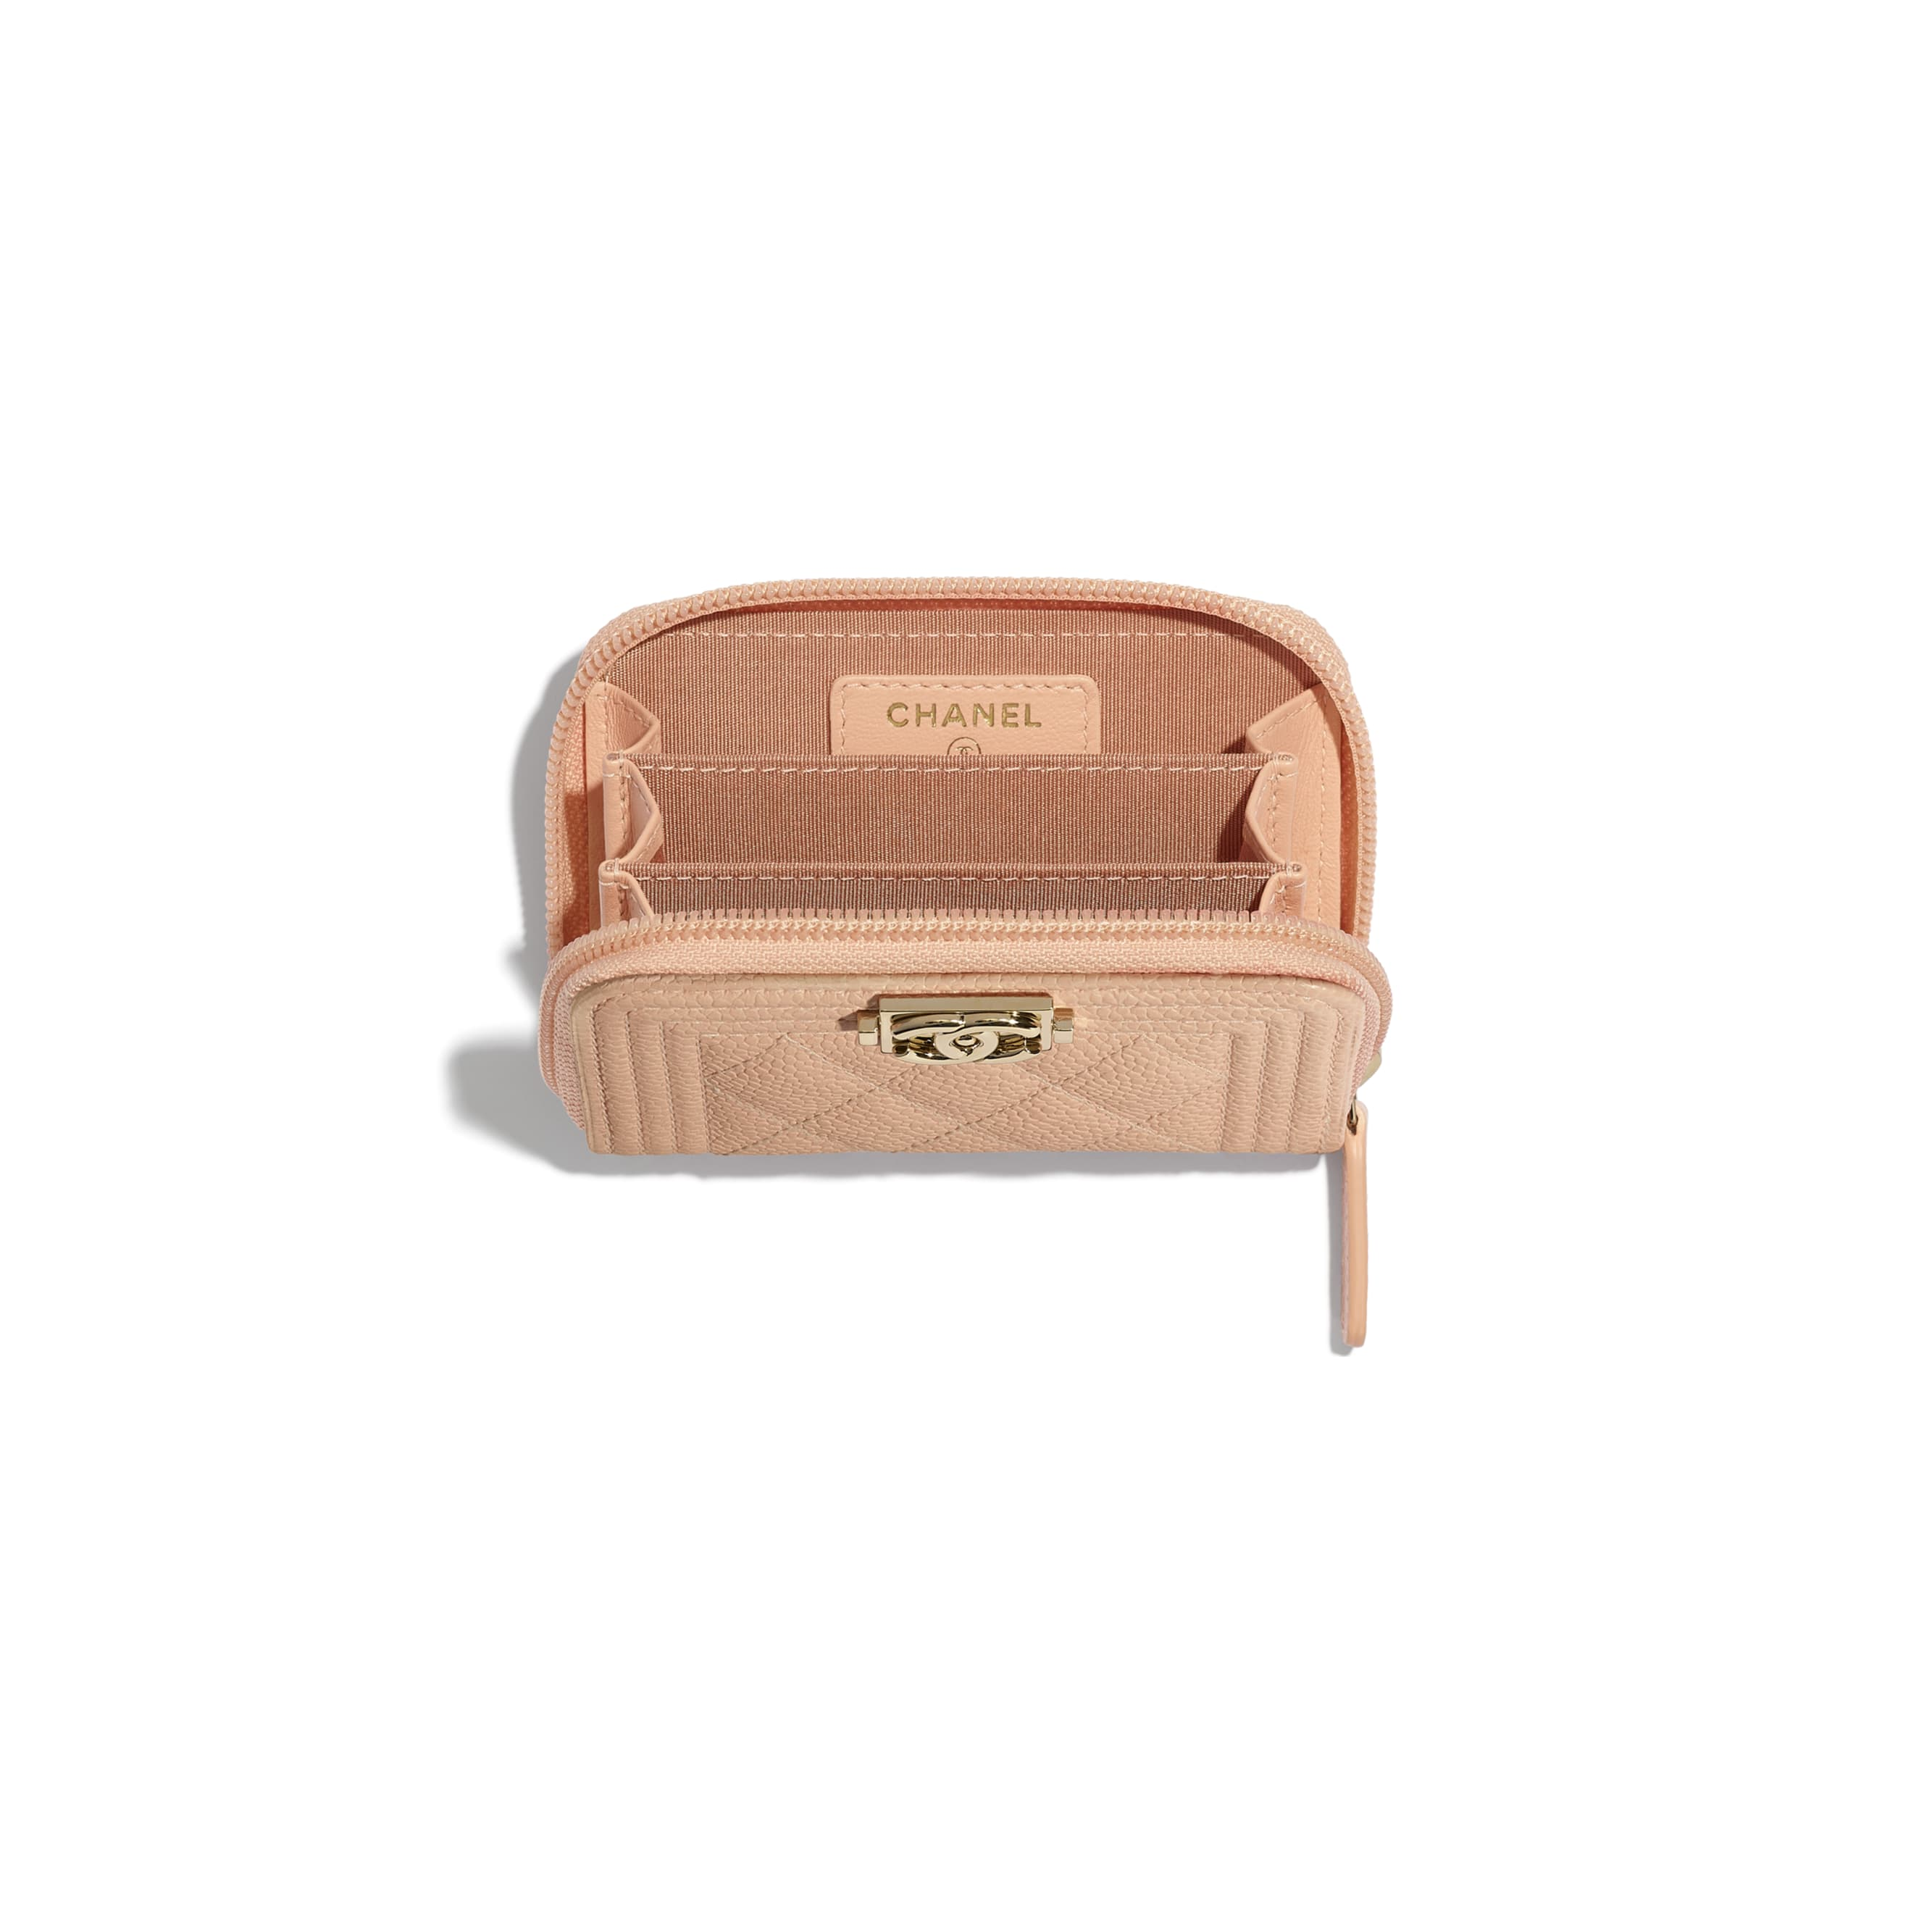 BOY CHANEL Zipped Coin Purse - Pink - Grained Calfskin & Gold-Tone Metal - CHANEL - Other view - see standard sized version